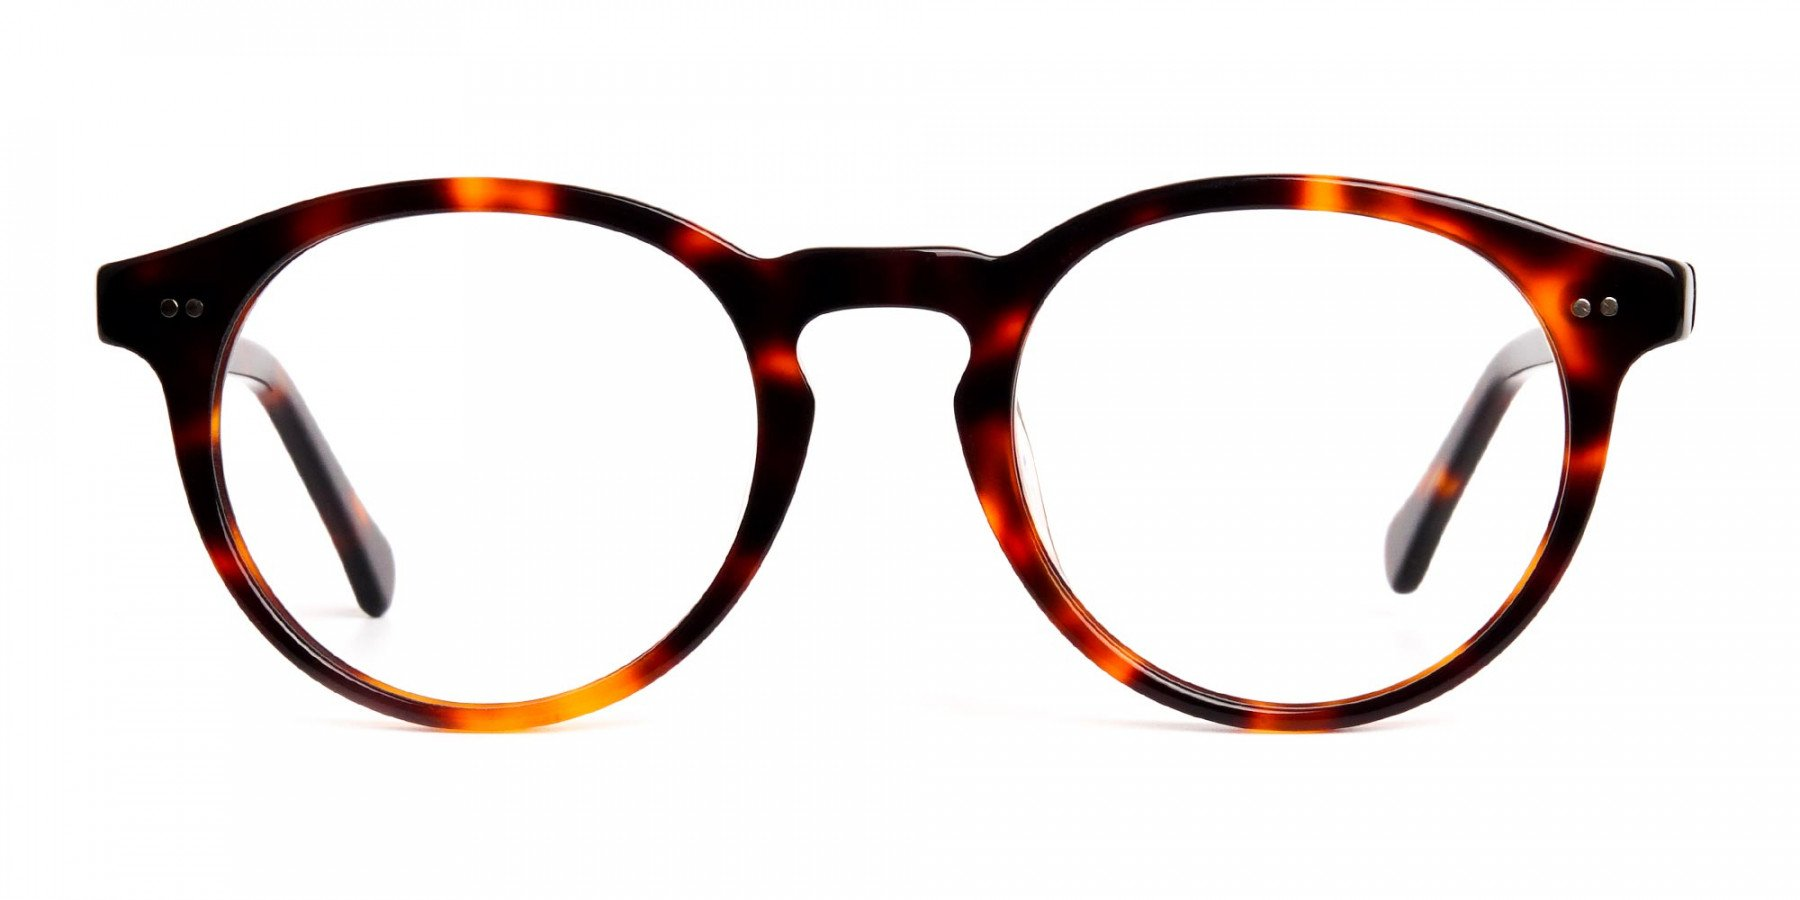 tortoise-shell-round-full-rim-glasses-frames-1